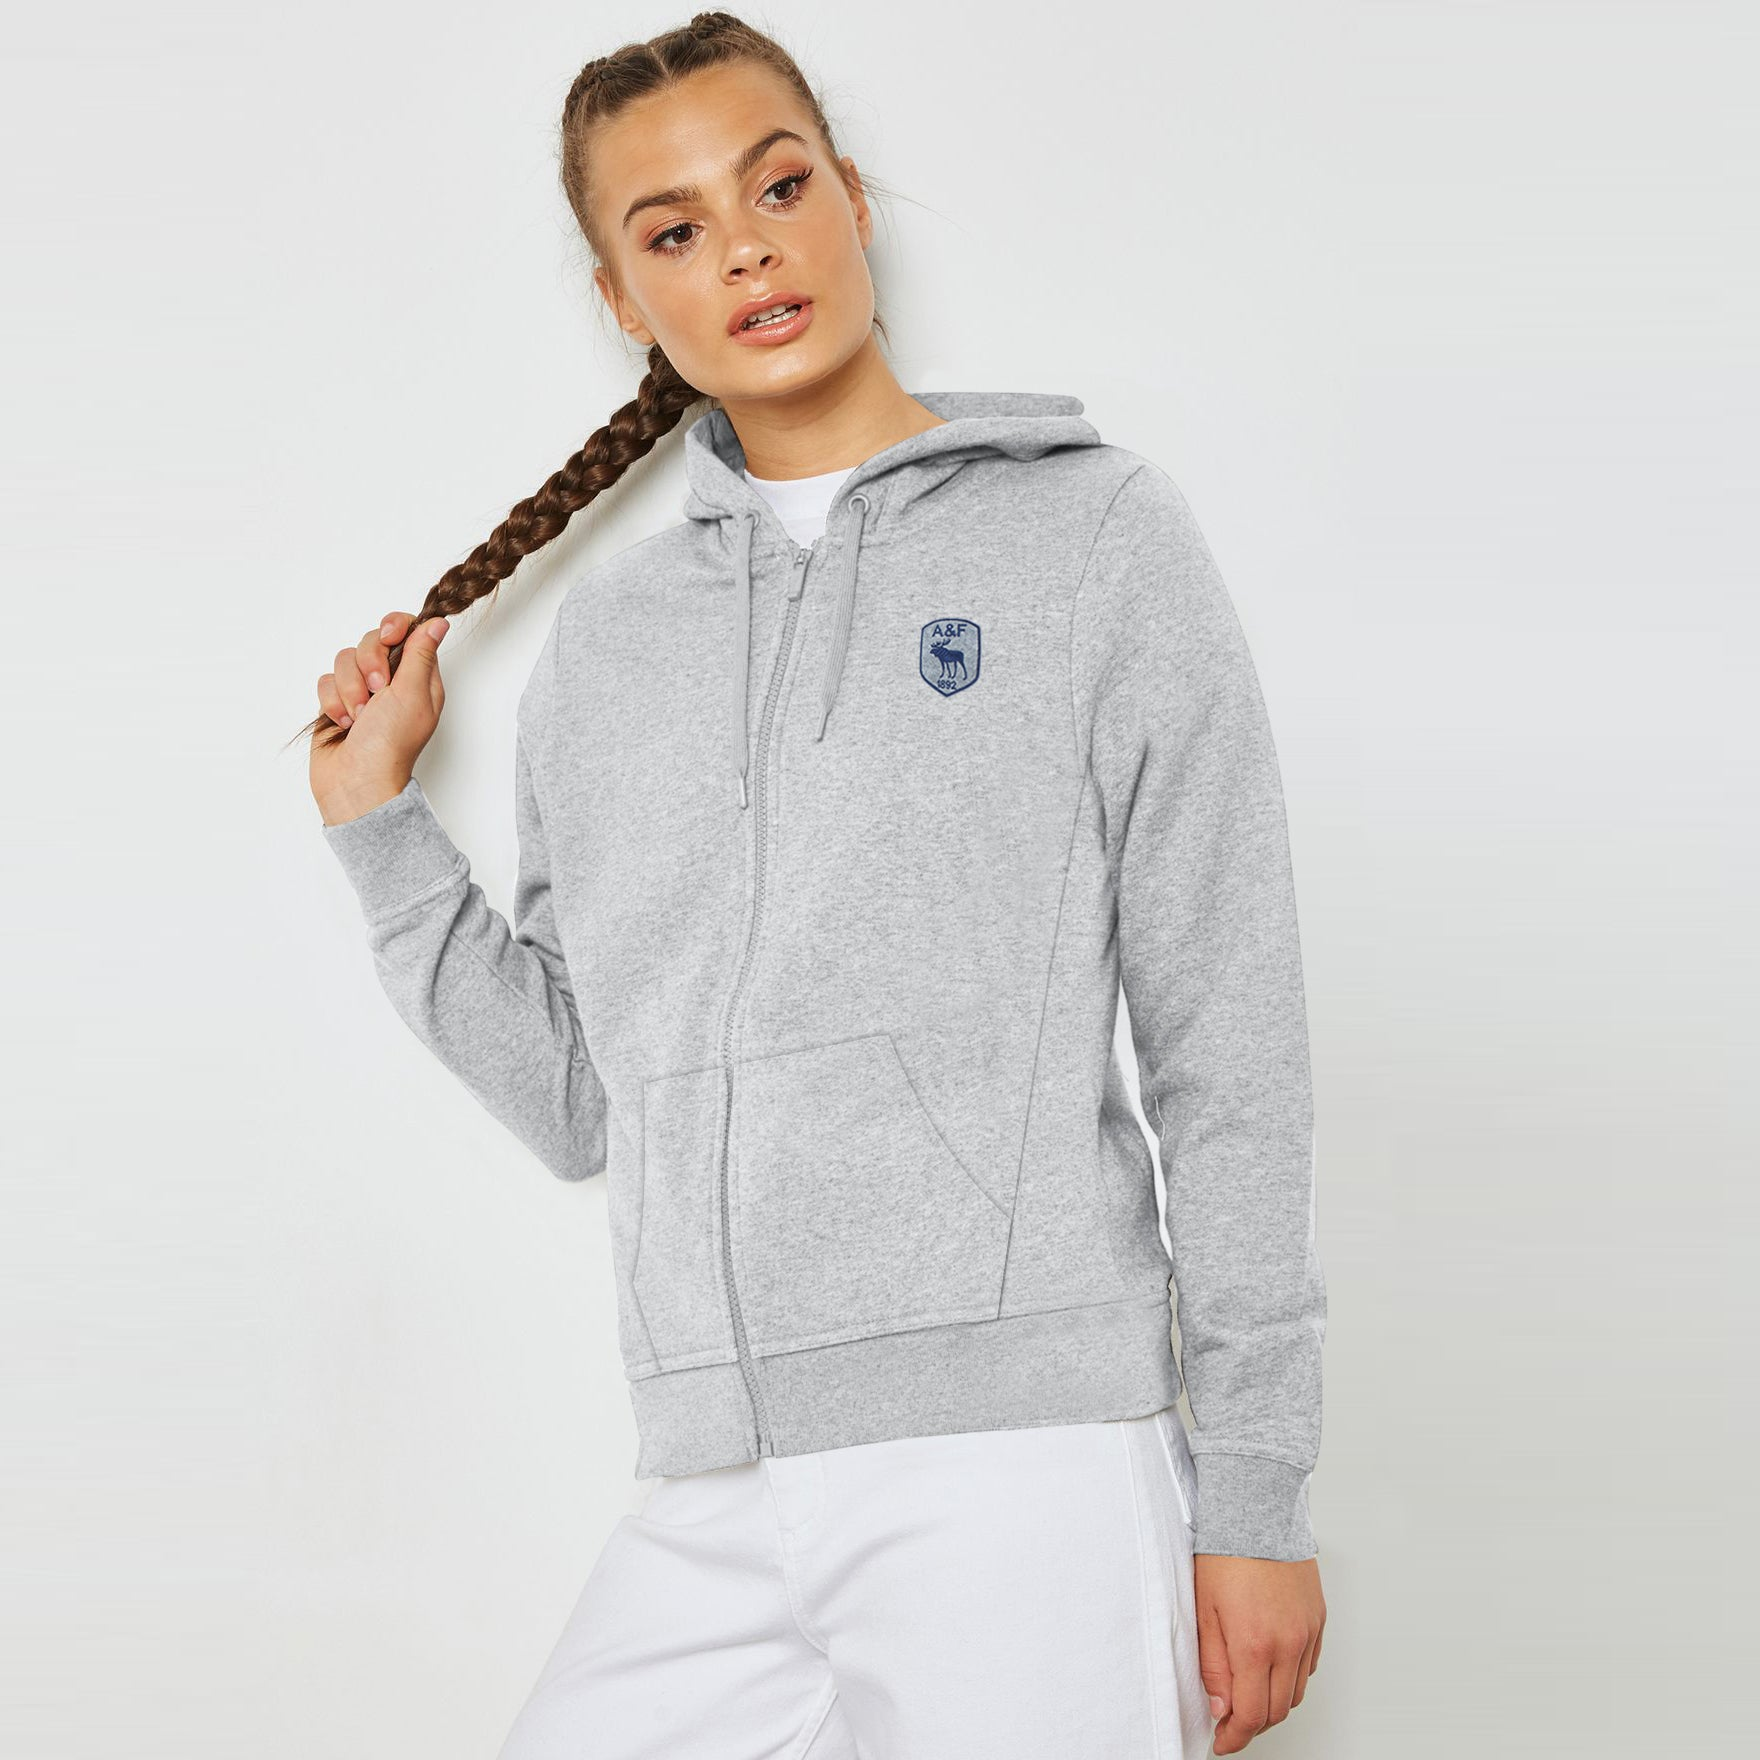 A&F Terry Fleece Zipper Hoodie For Ladies-Grey Melange-BE7015